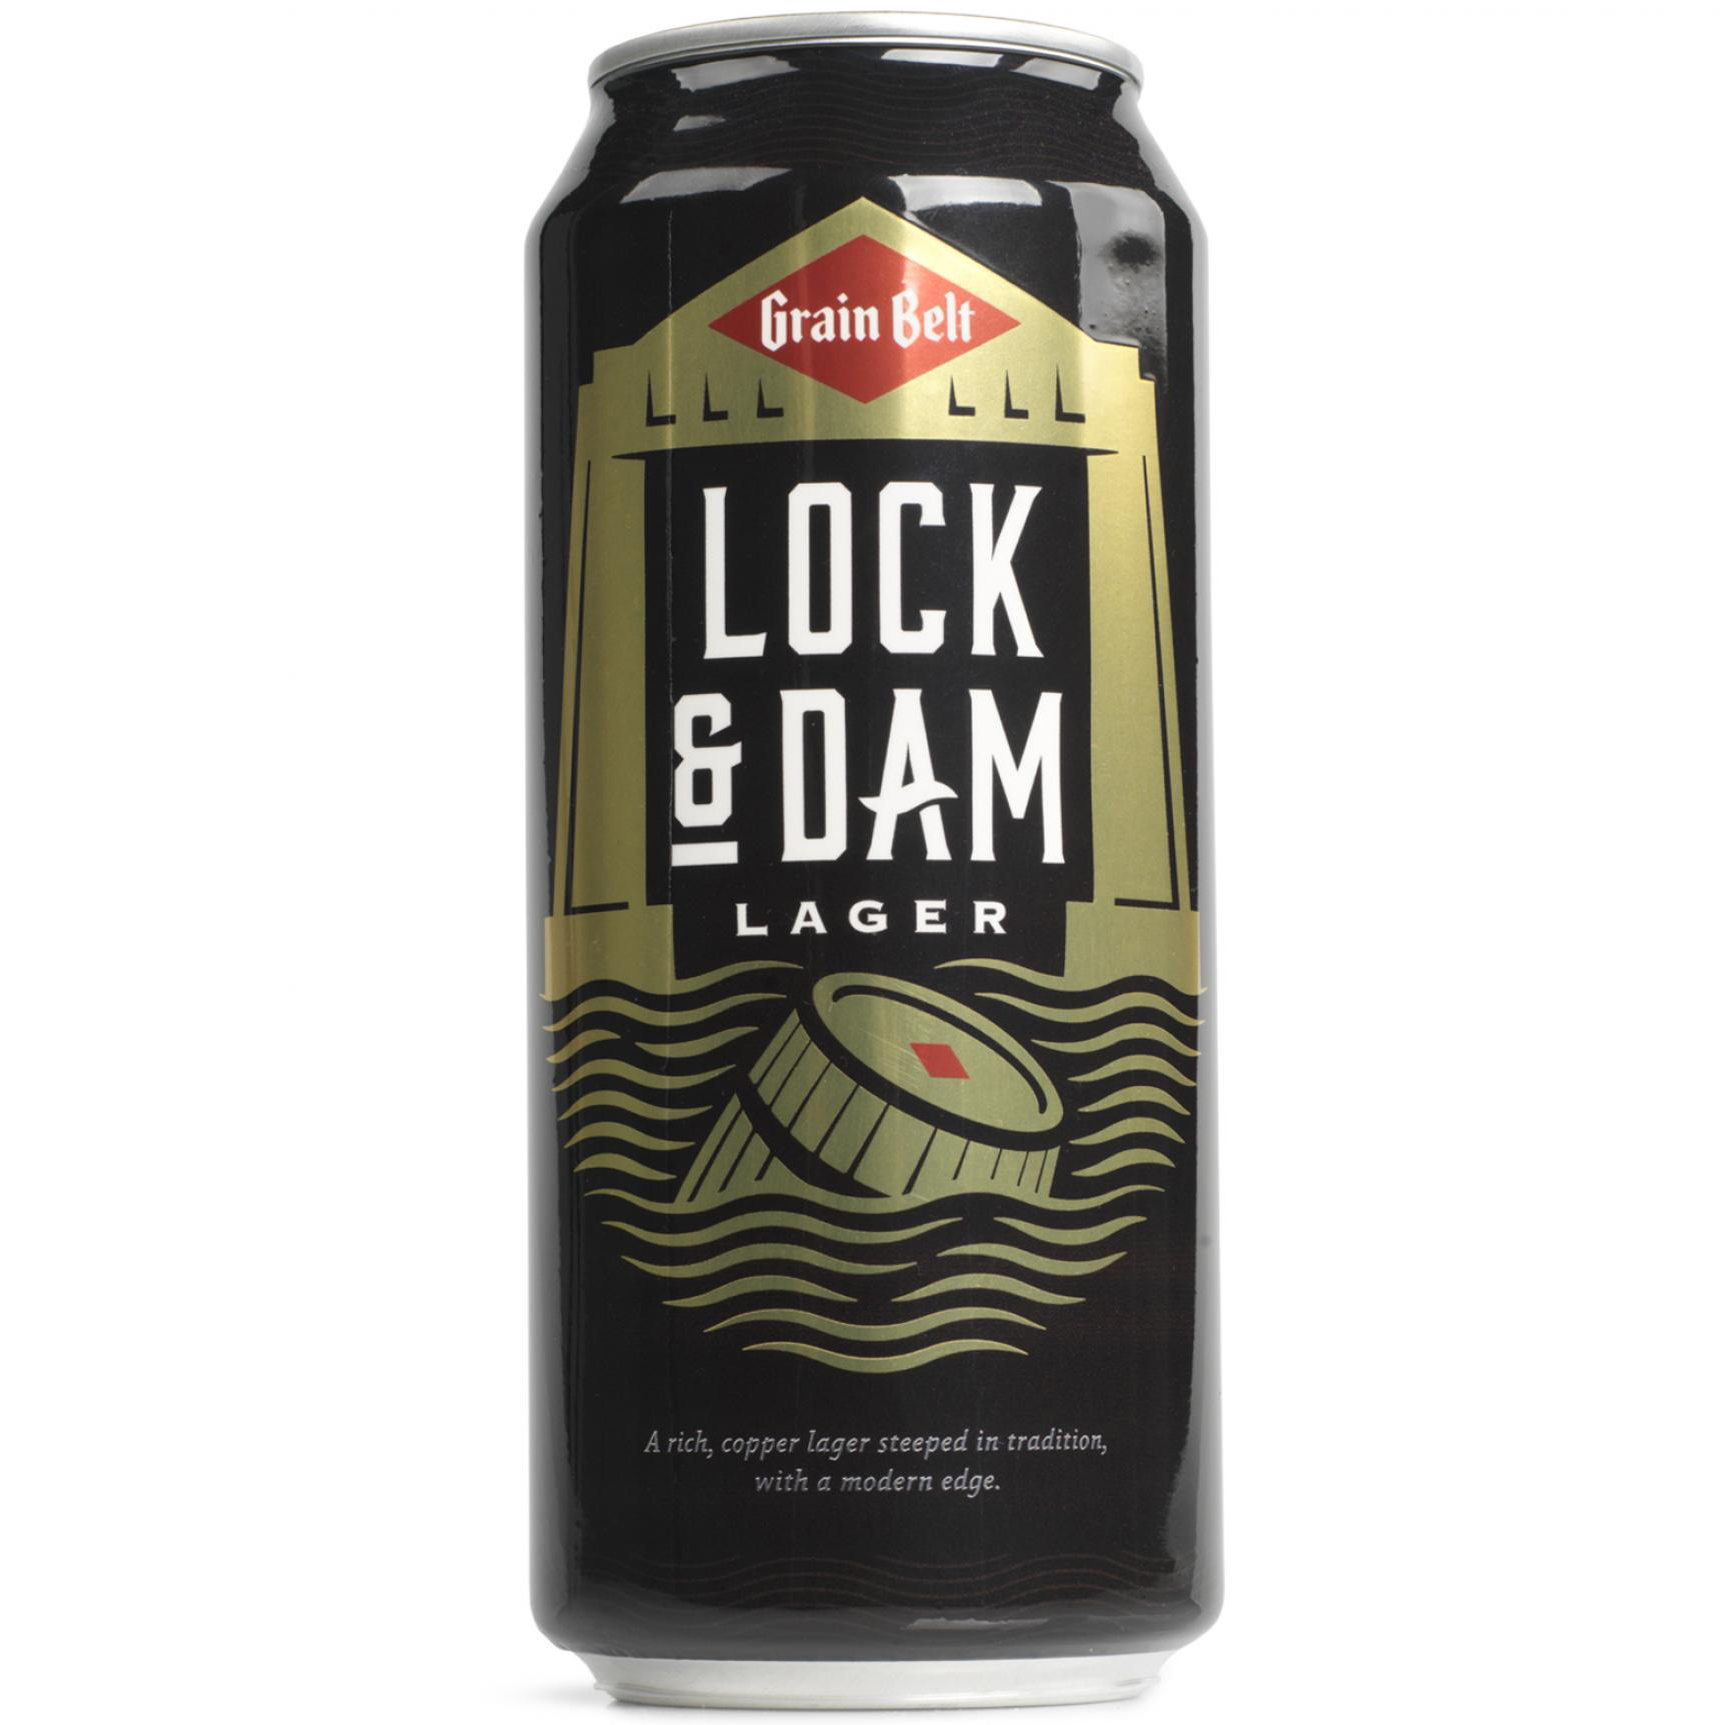 Grainbelt Lock and Dam Lager proof of concept packaging mockups.